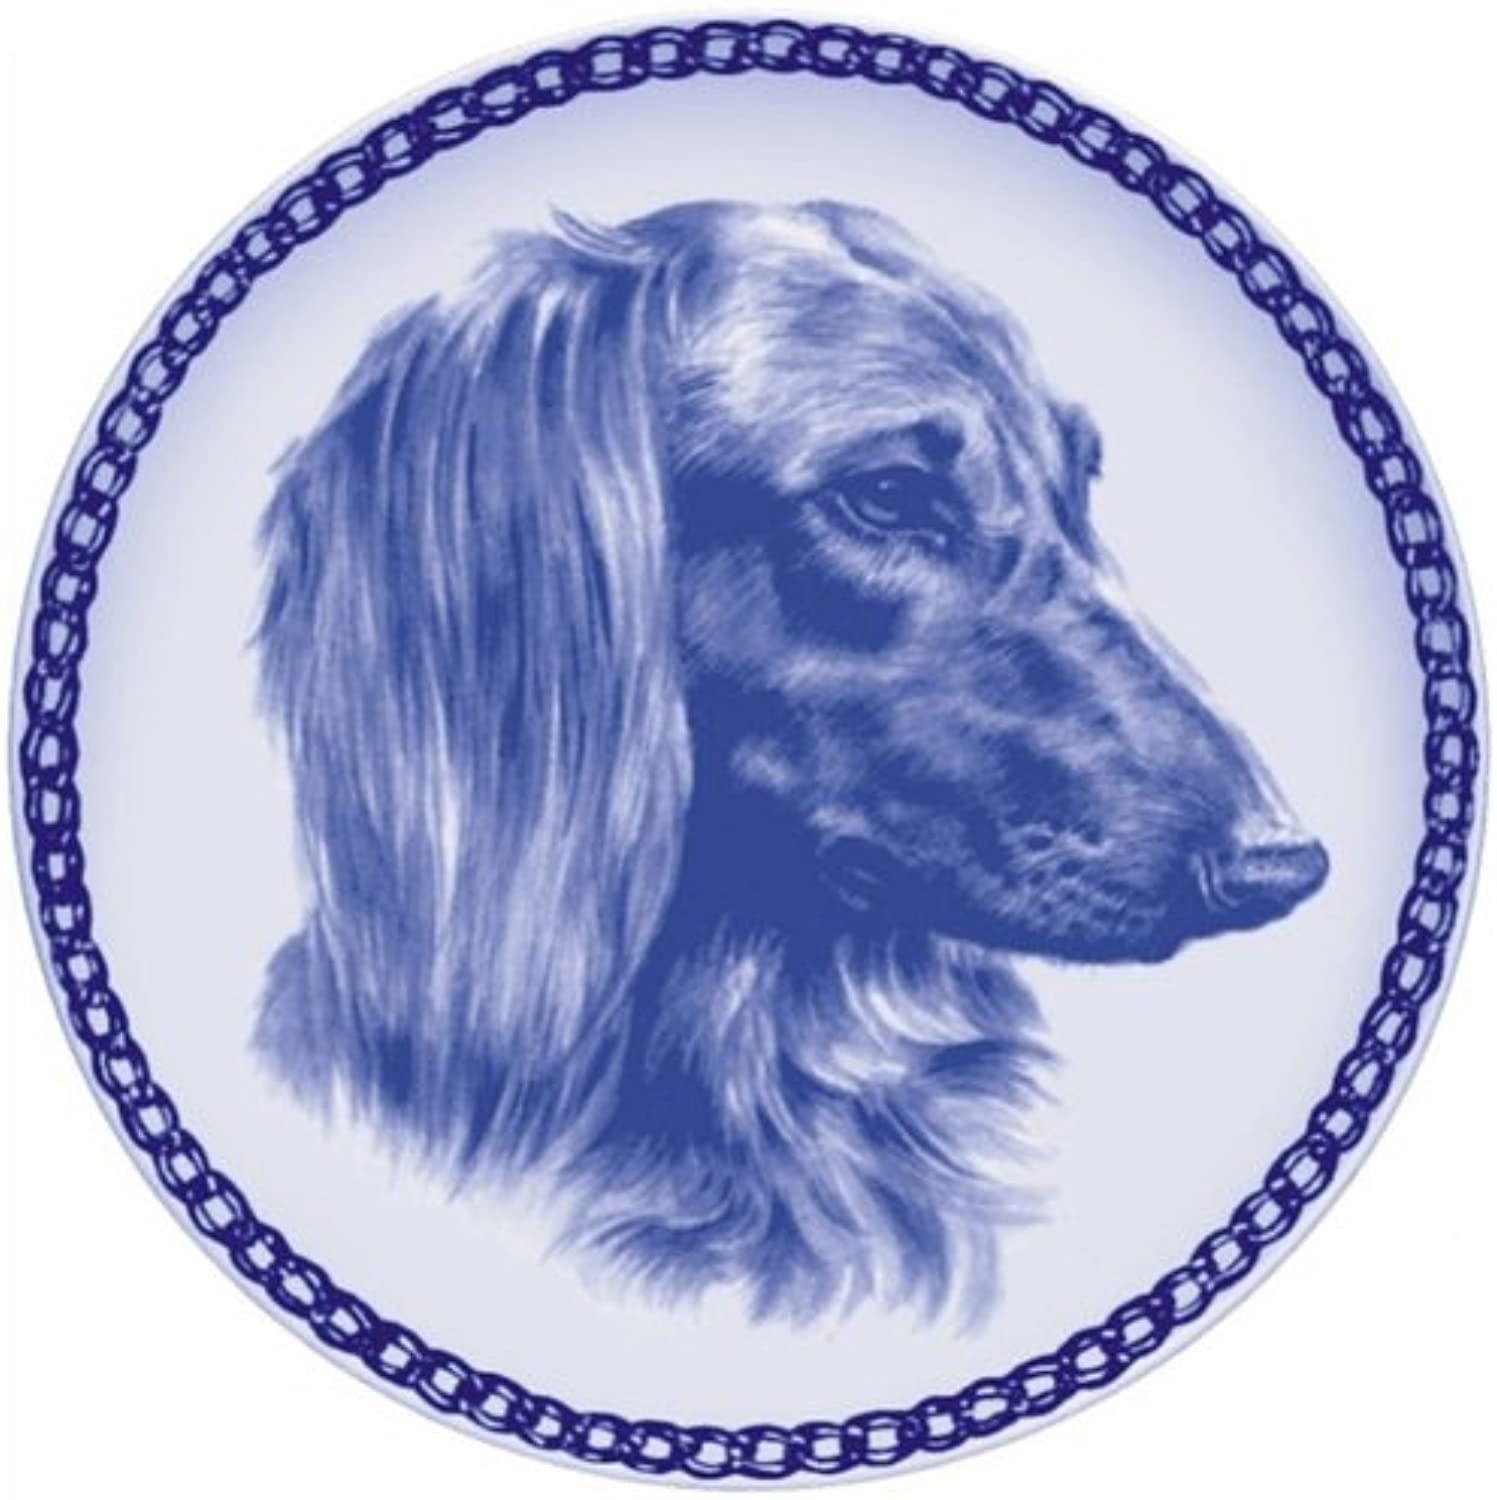 Dachshund  Longhaired Lekven Design Dog Plate 19.5 cm  7.61 inches Made in Denmark NEW with certificate of origin PLATE  7553